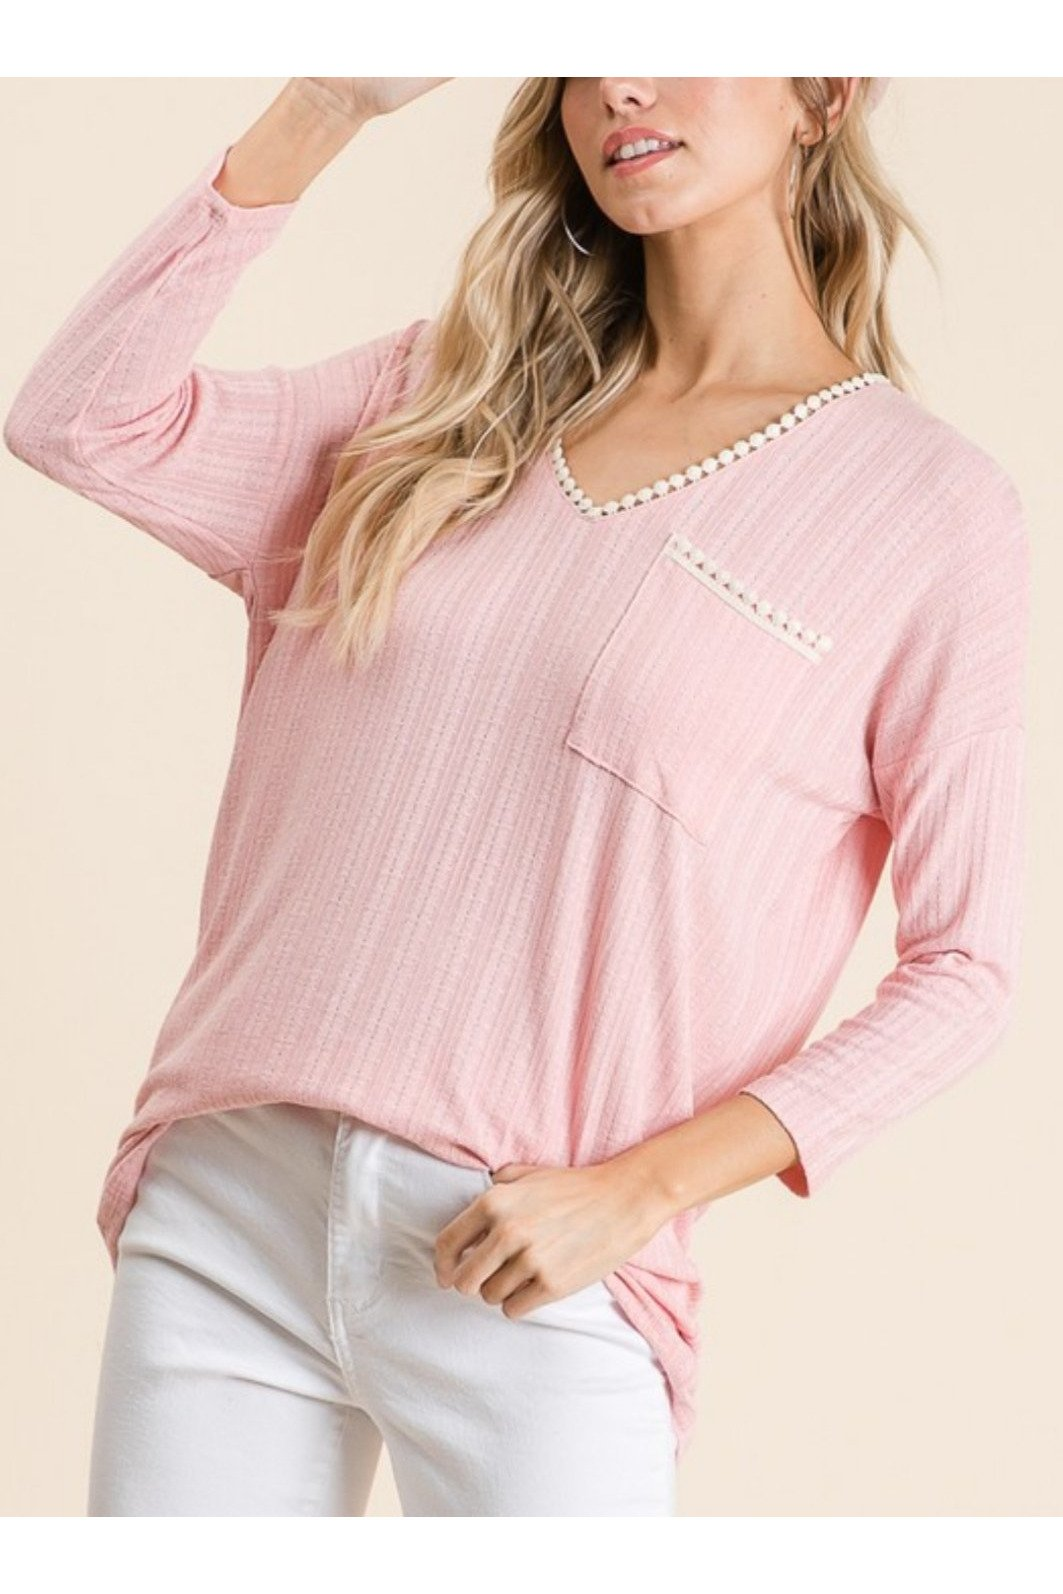 Ariah lace detail top in blush